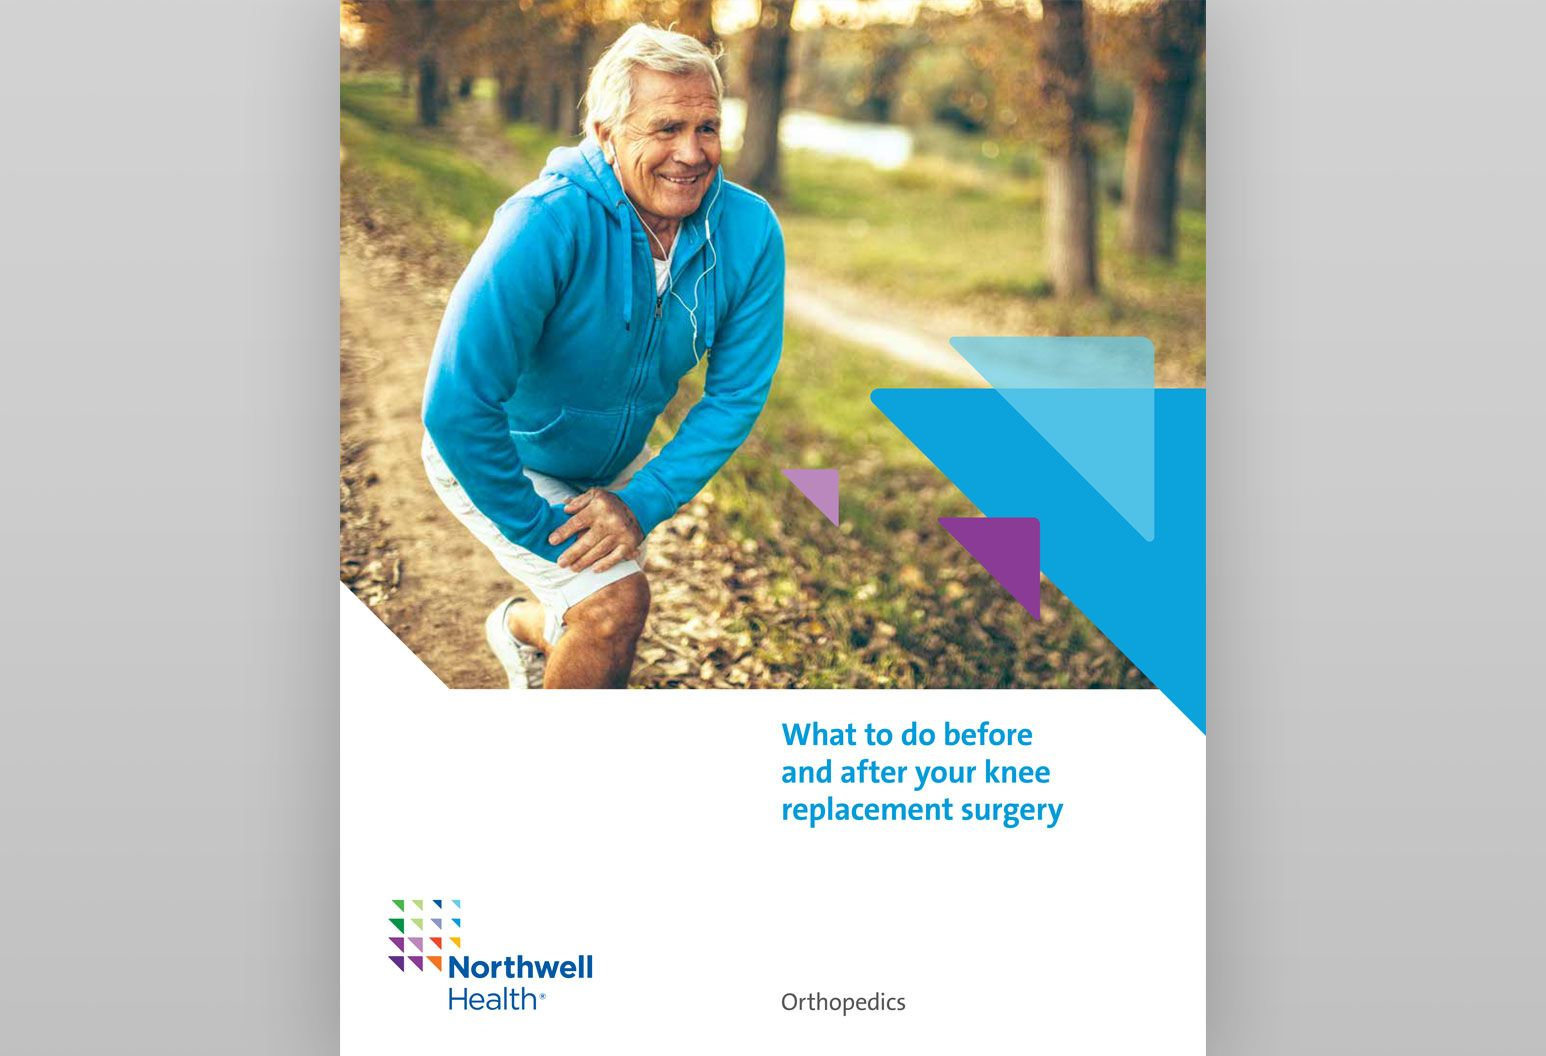 On the cover of a booklet about what to do before and after your knee replacement surgery, there is an elderly man kneeling and stretching. He's wearing a blue sweatshirt and has earbuds in.